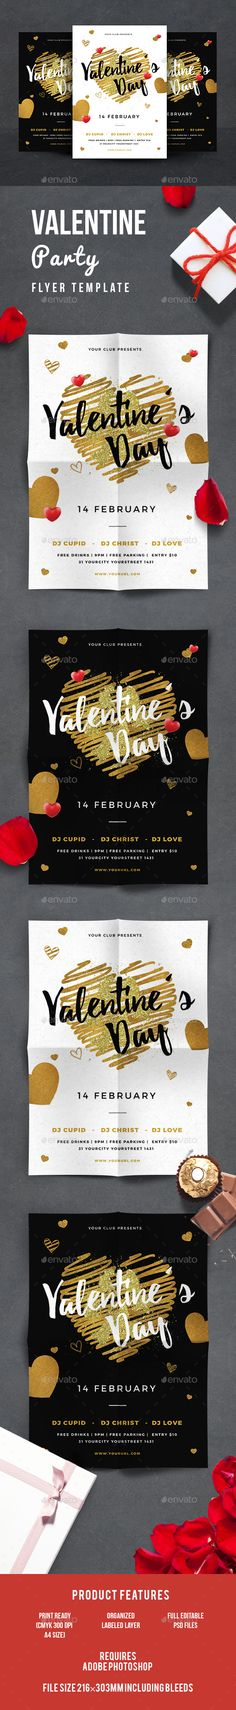 Valentines Flyer Template PSD